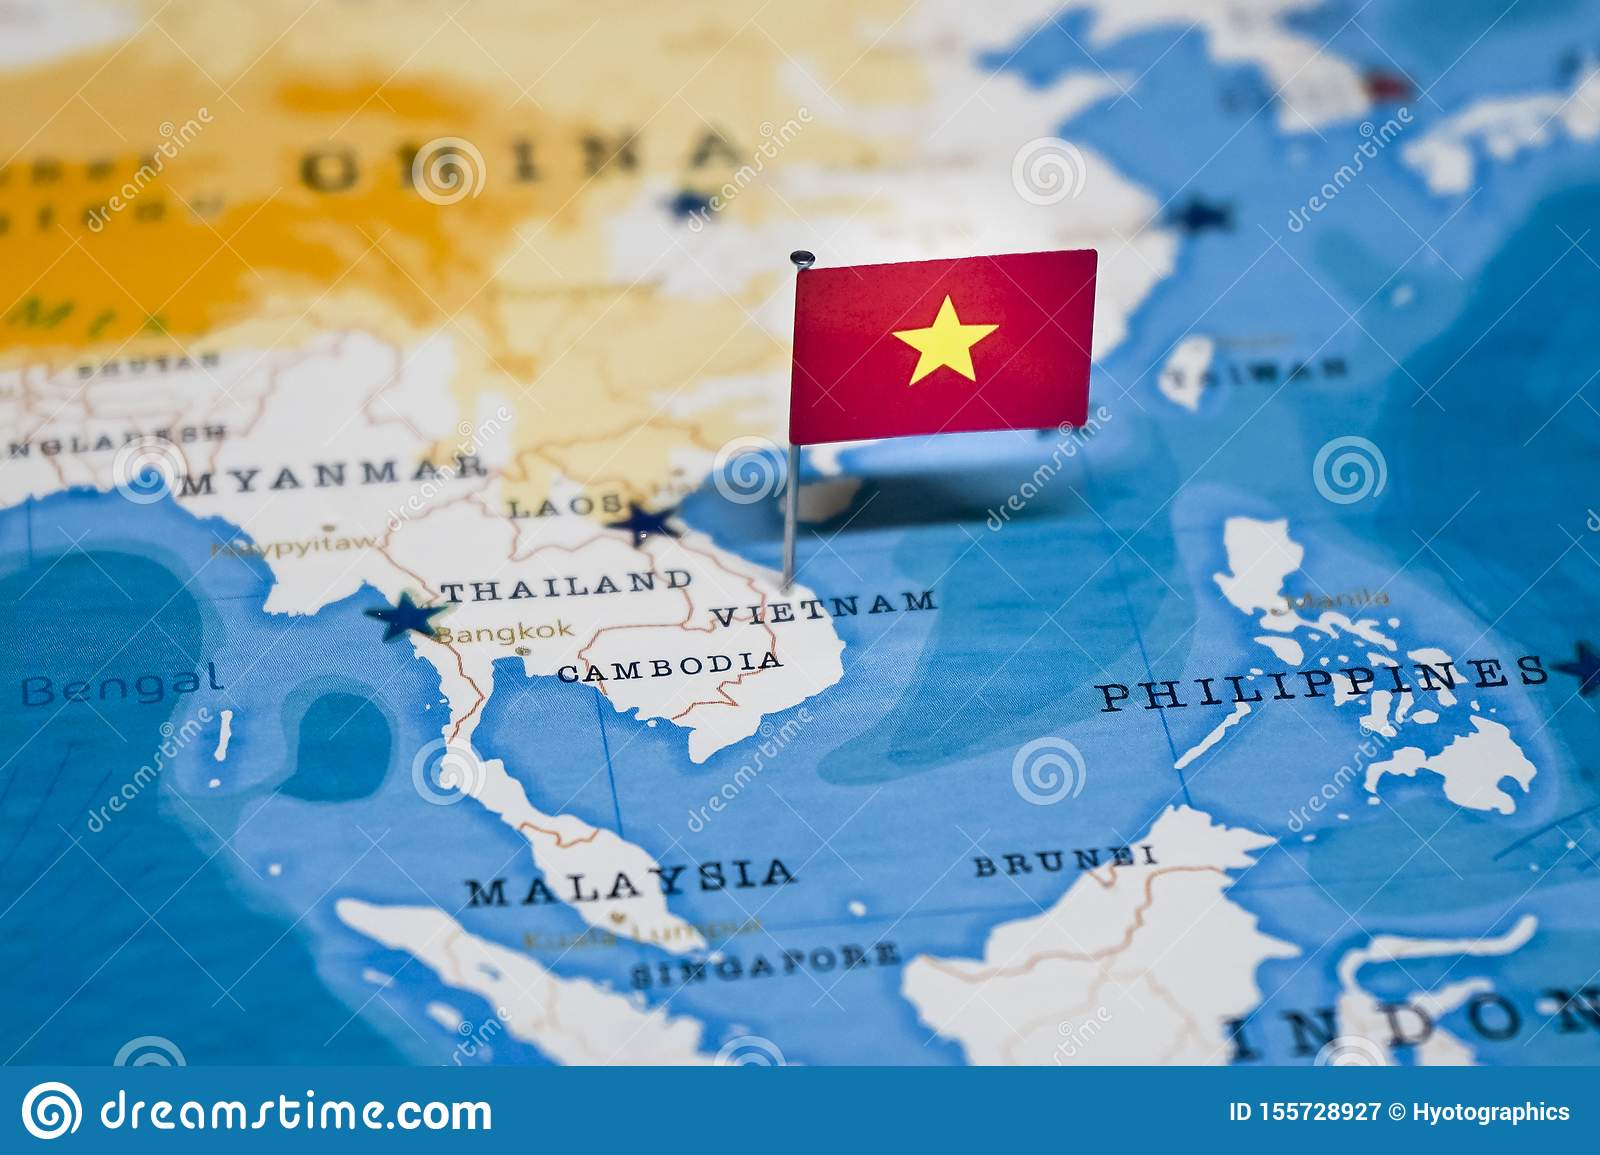 Picture of: 888 Vietnam Map Photos Free Royalty Free Stock Photos From Dreamstime